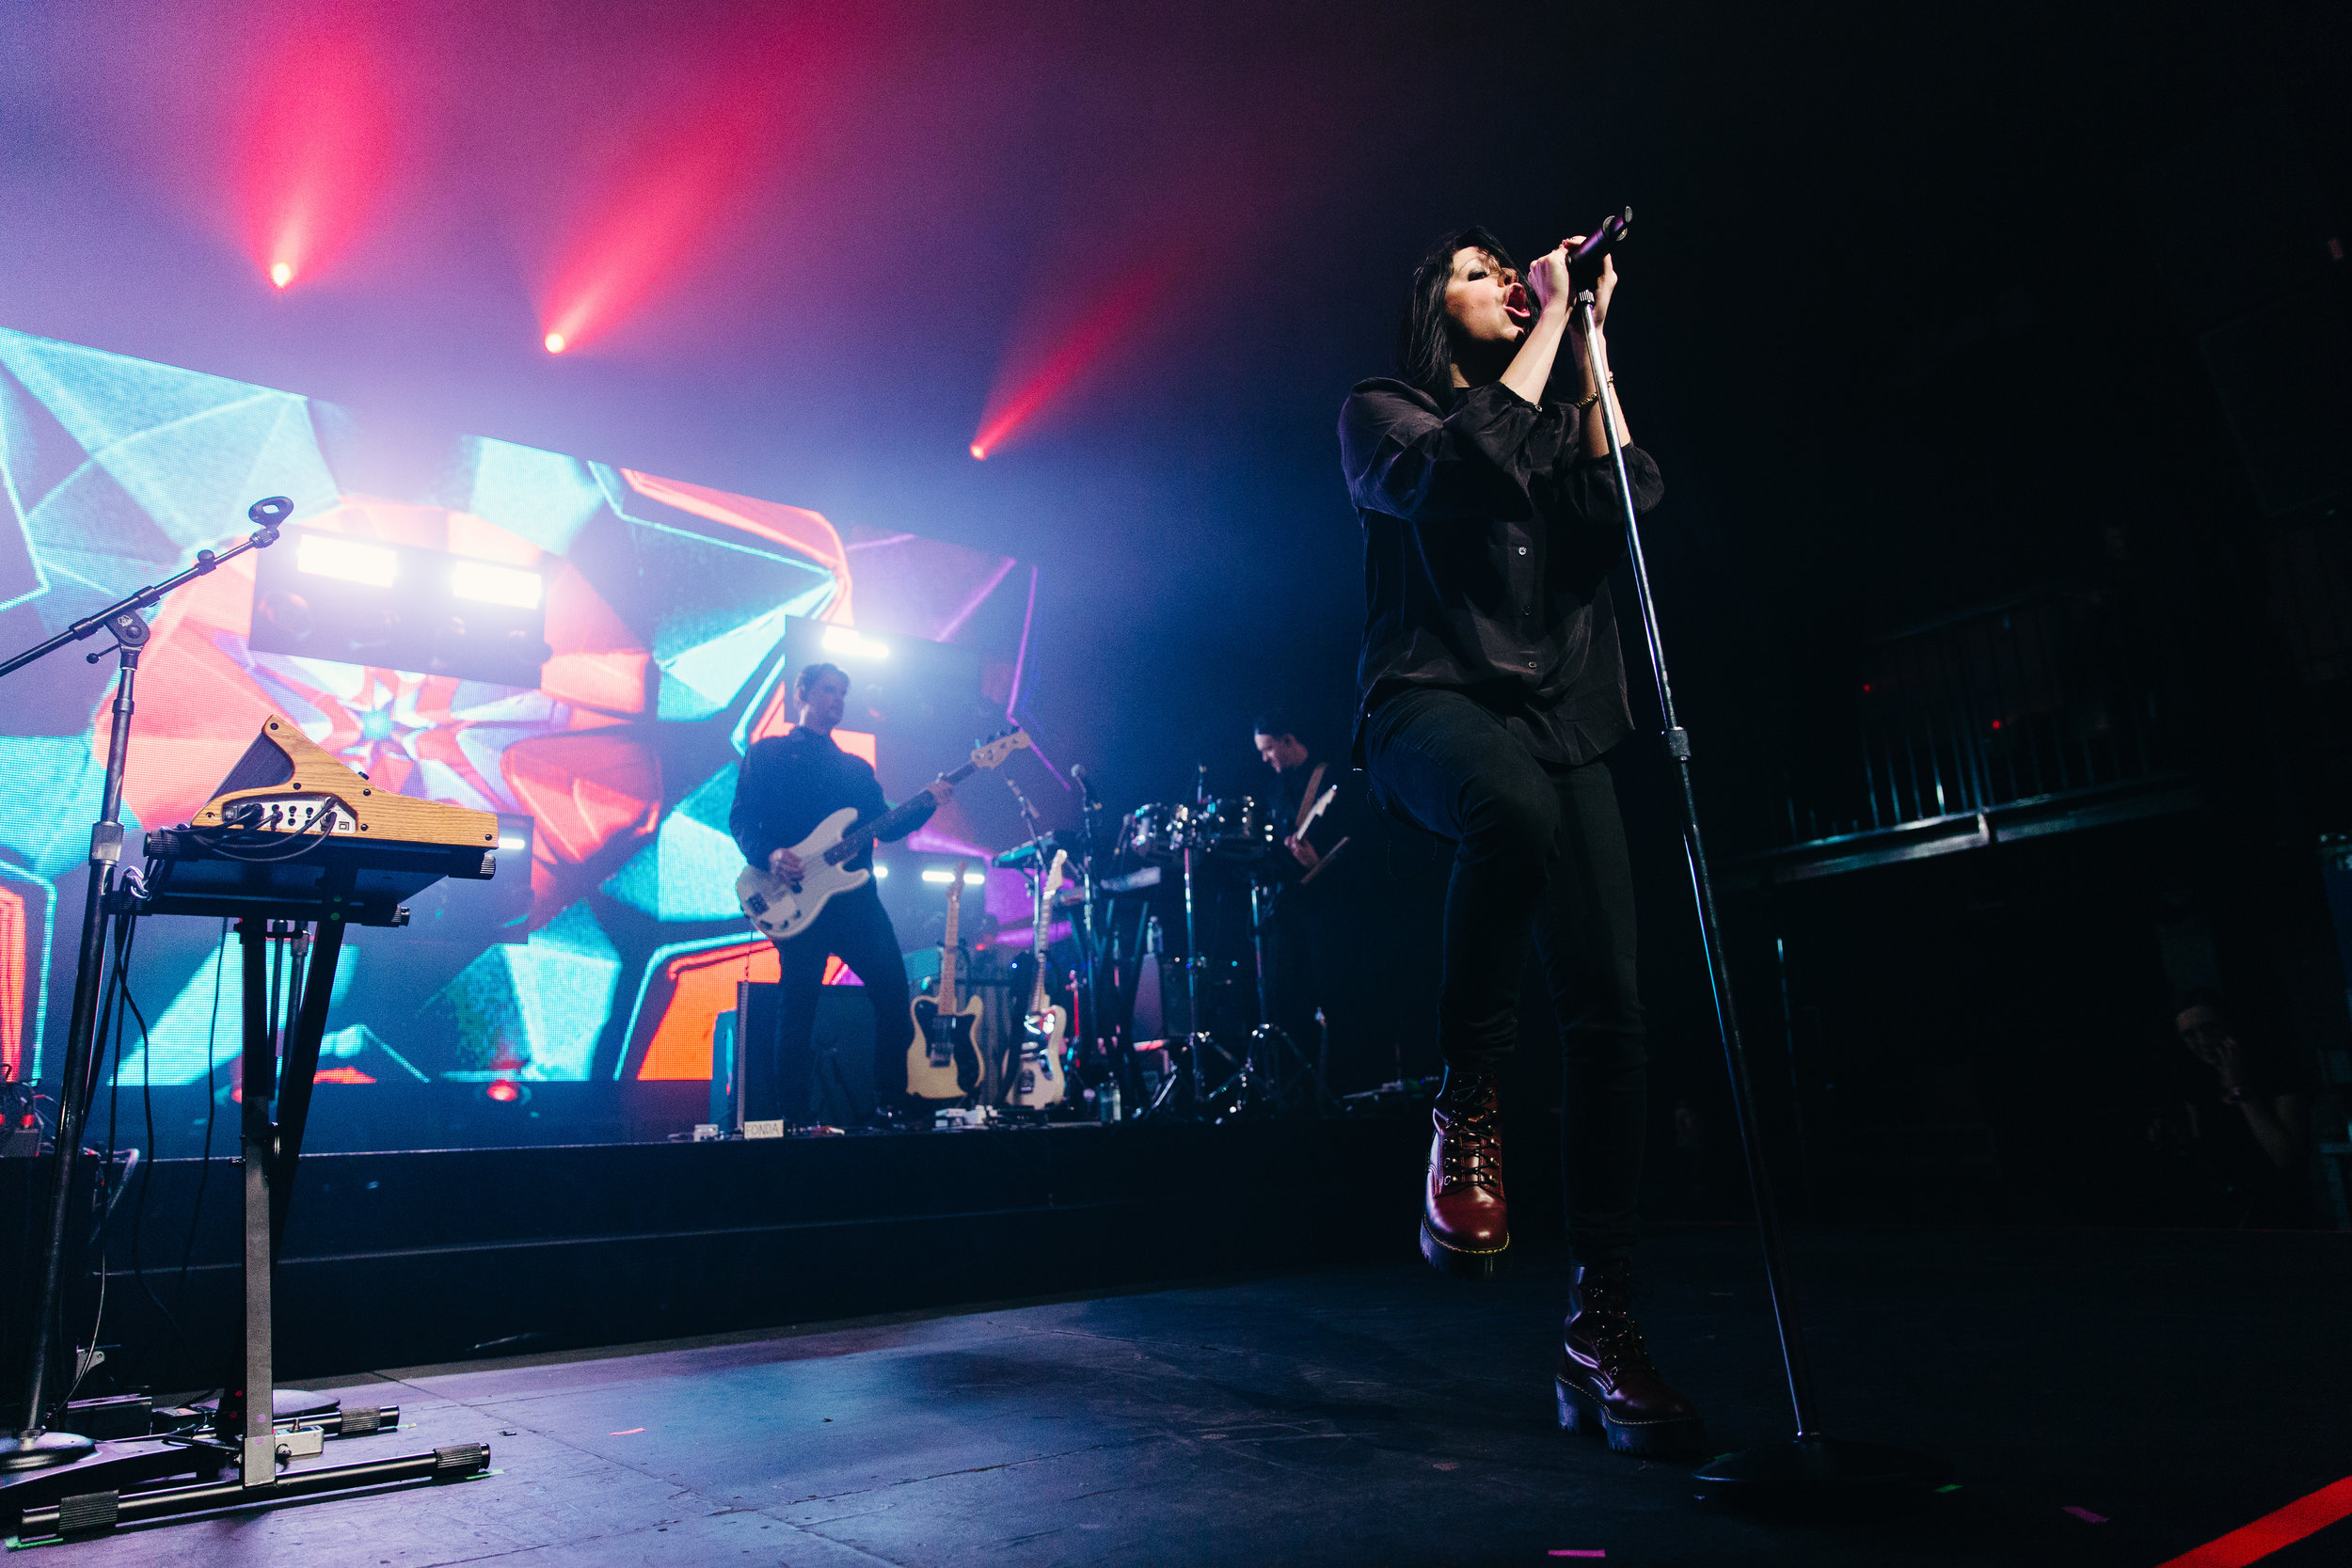 kirby-gladstein-photography-kflay-concert-fonda-theatre-los-angeles-2018-7